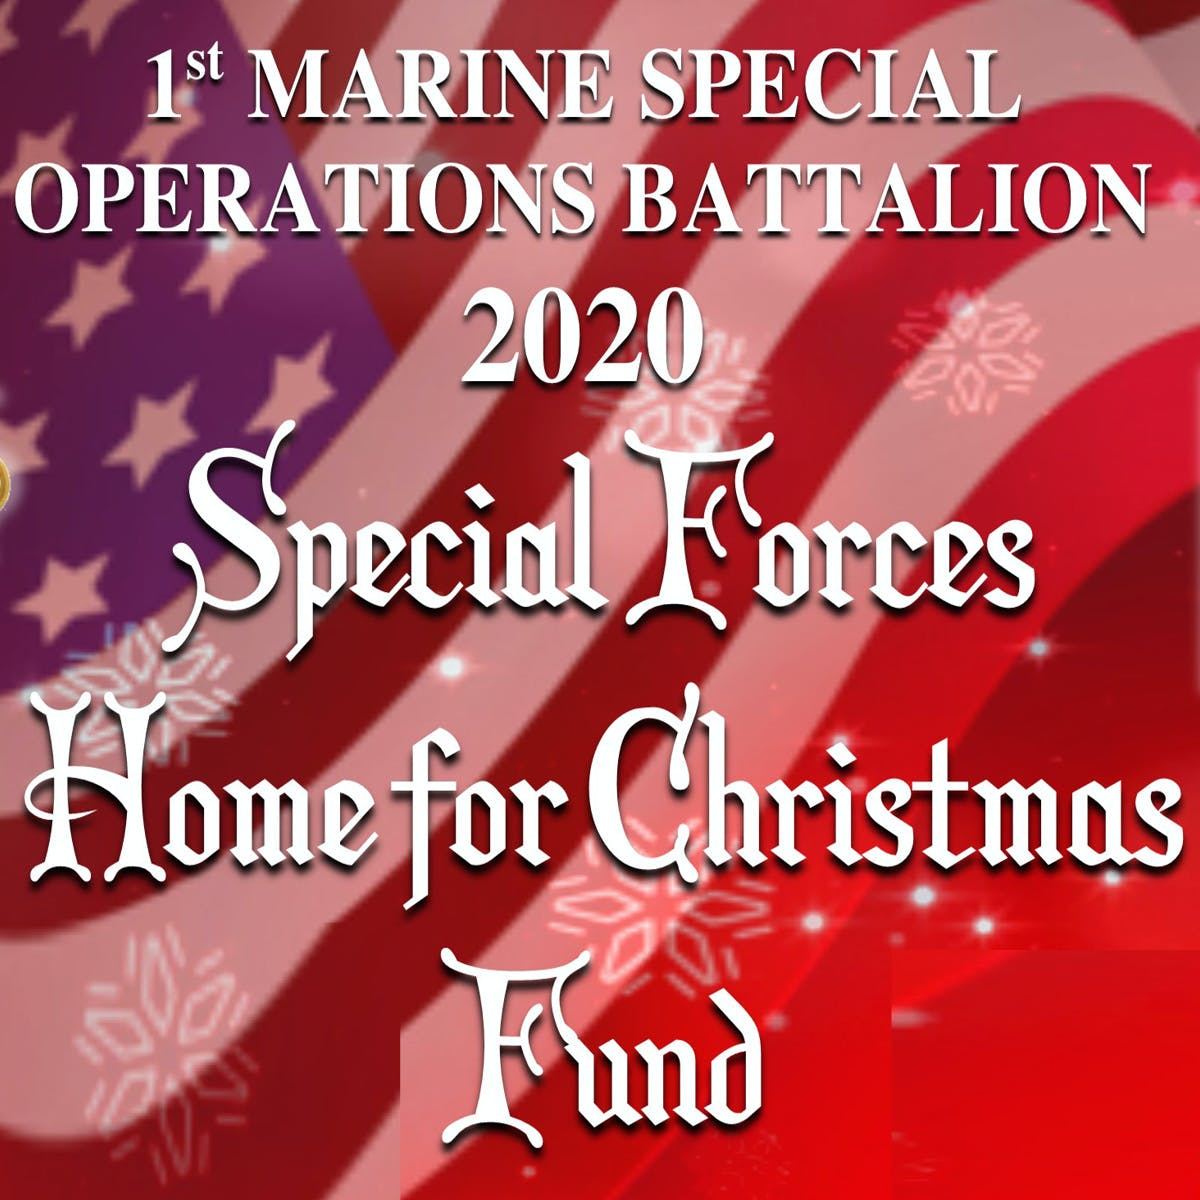 Special Forces Home for Christmas Fund